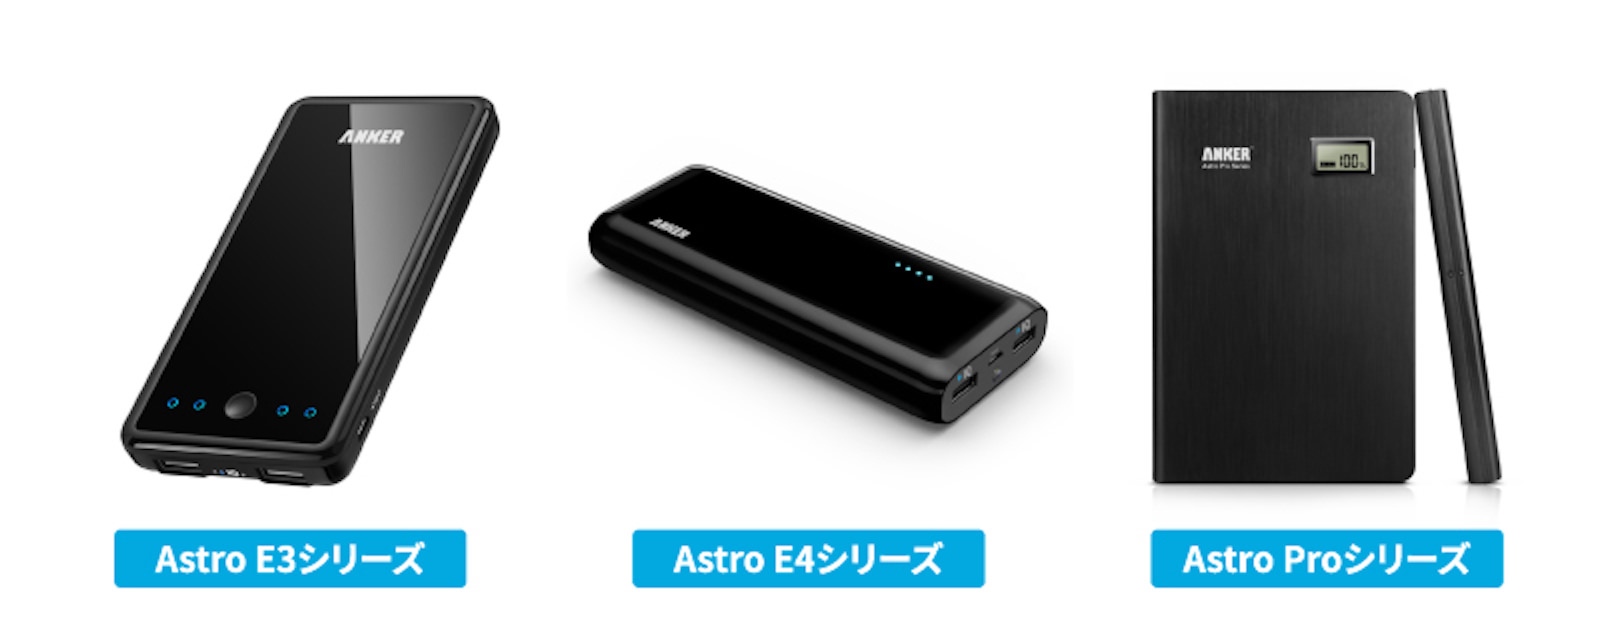 anker-exchange-battery-campaign-type.jpg